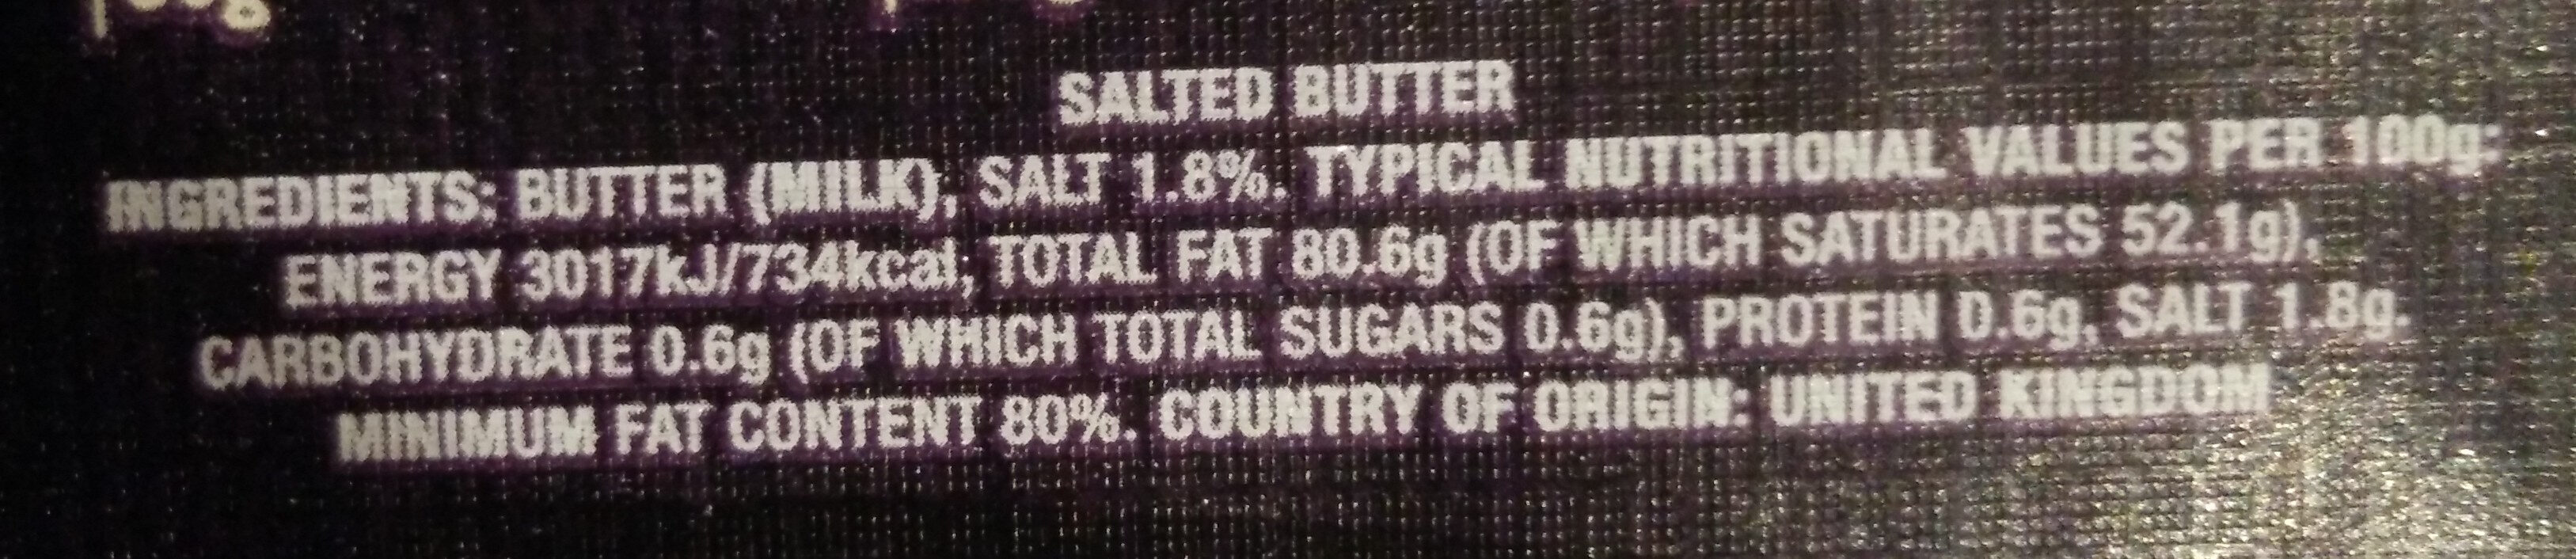 Farmhouse butter - salted - Nutrition facts